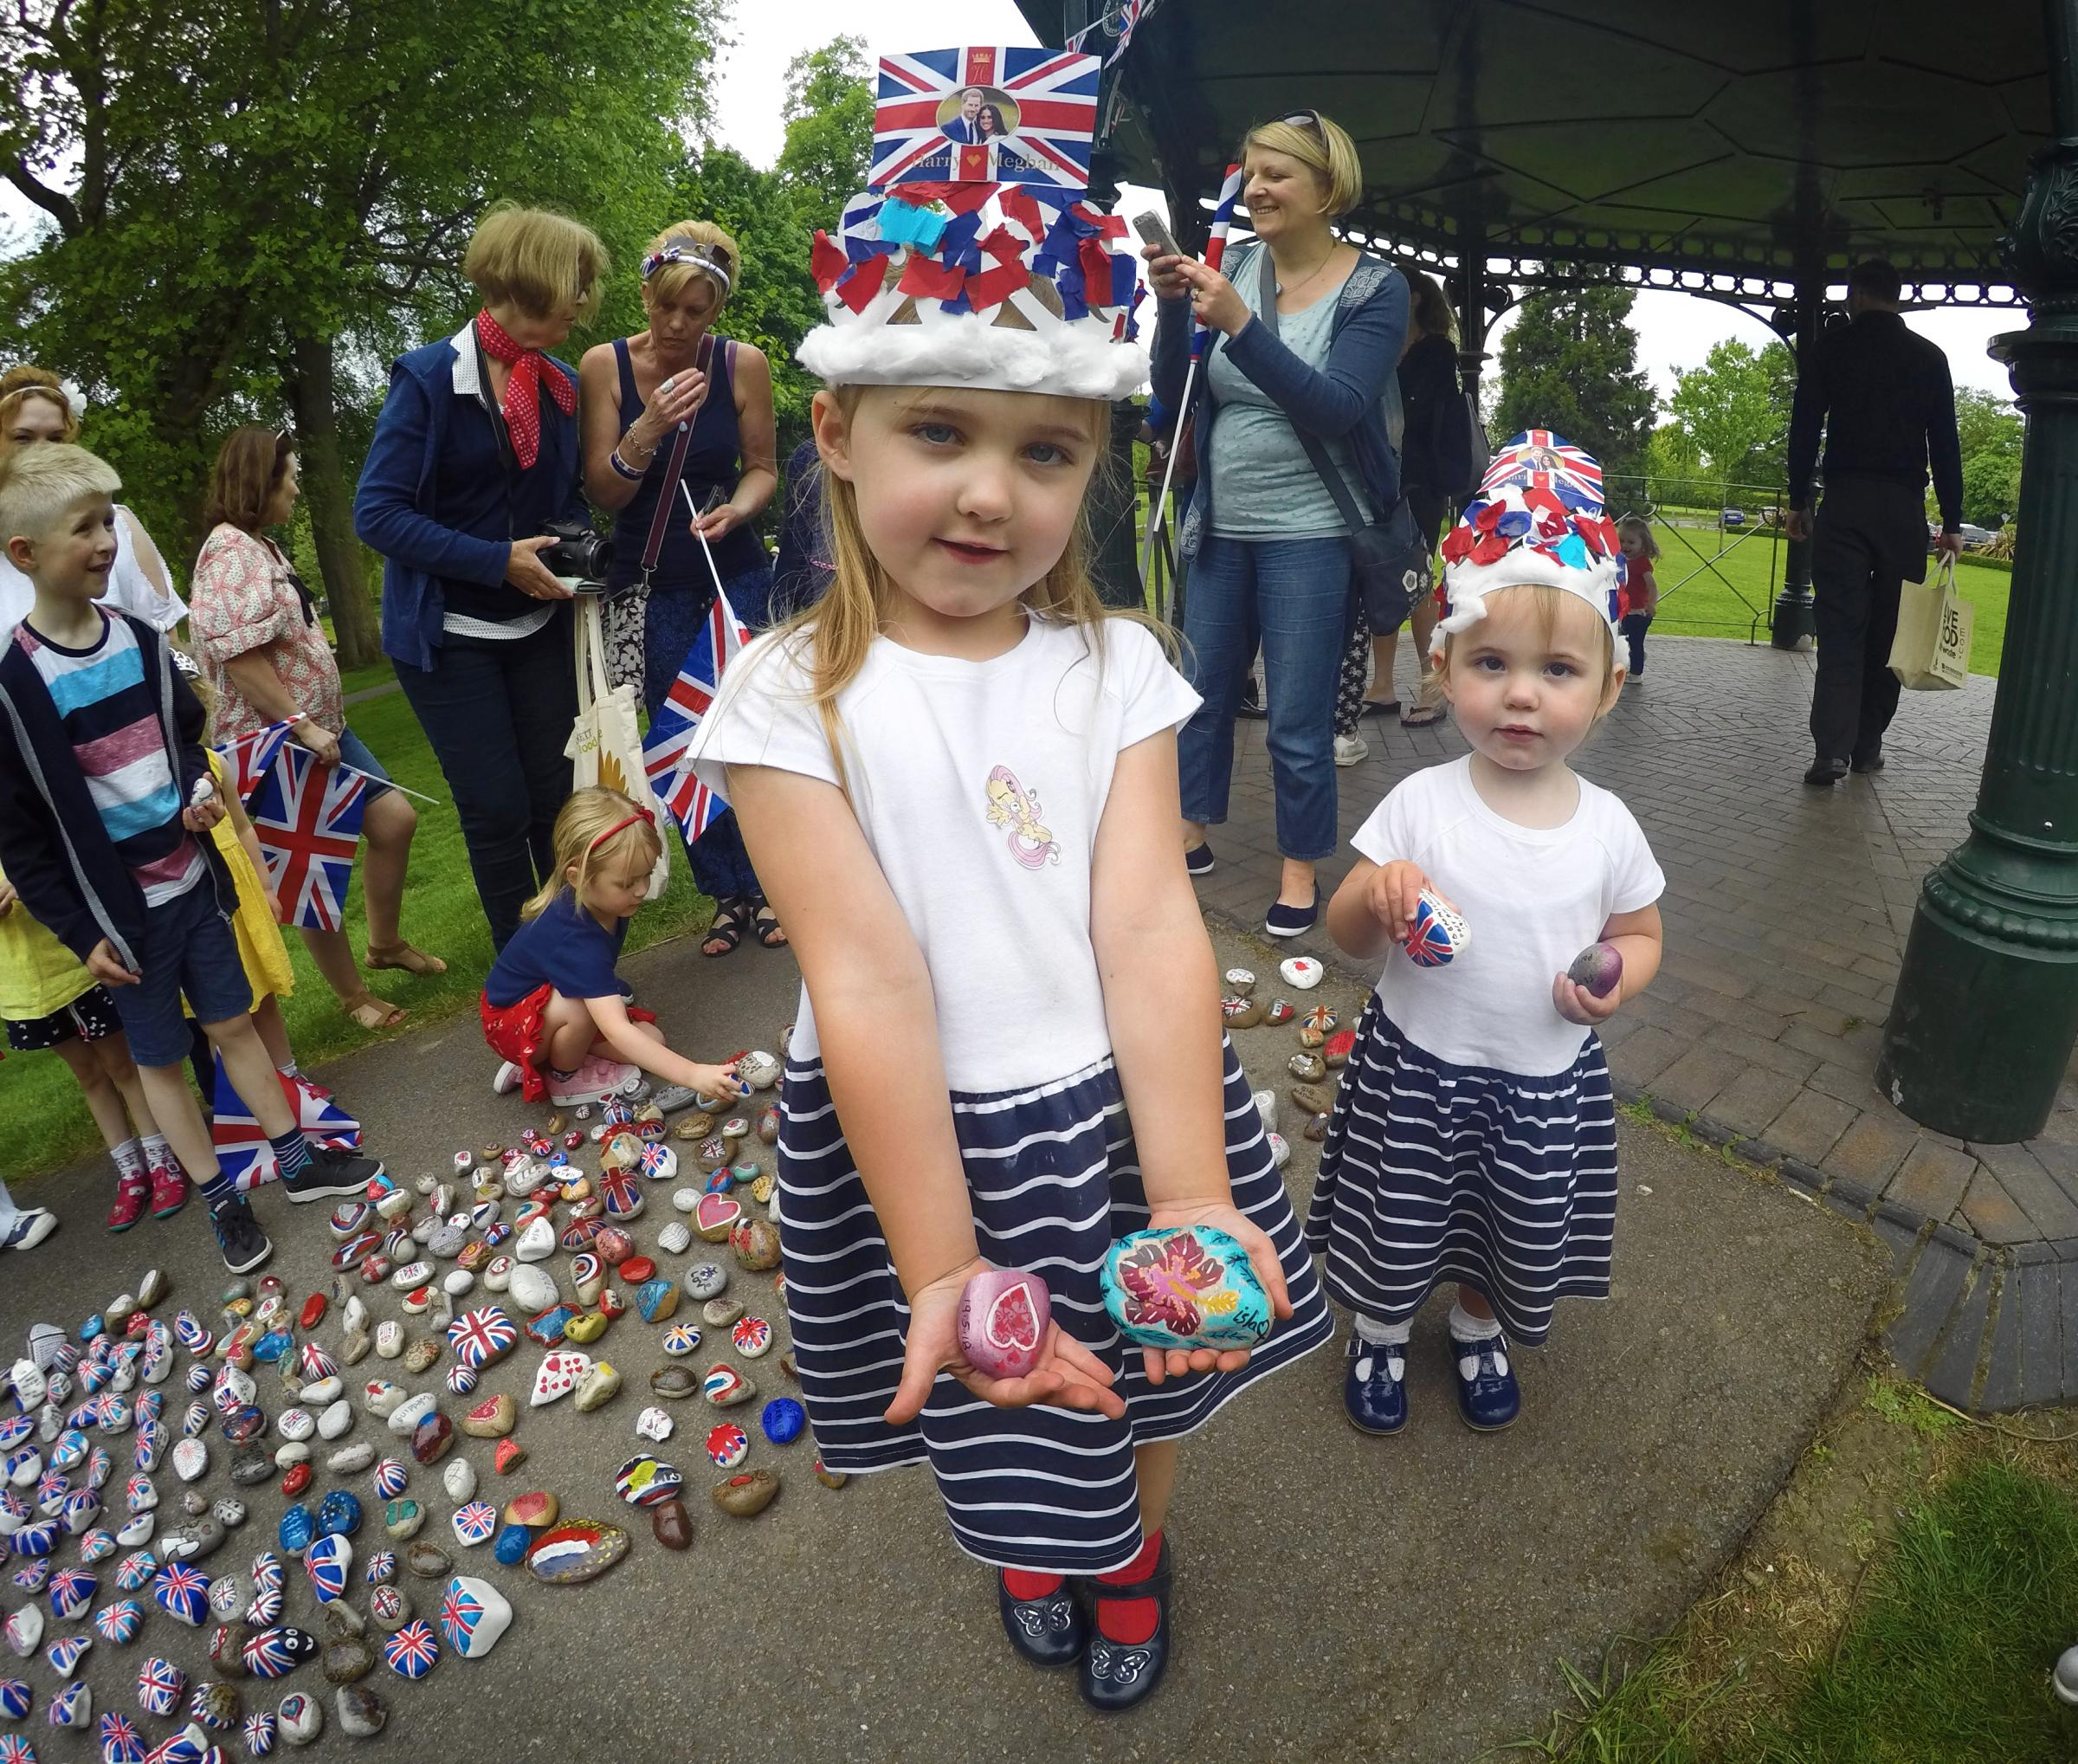 Evie and Erin Bricknell, aged 4 and 2, with their royal wedding-themed rocks